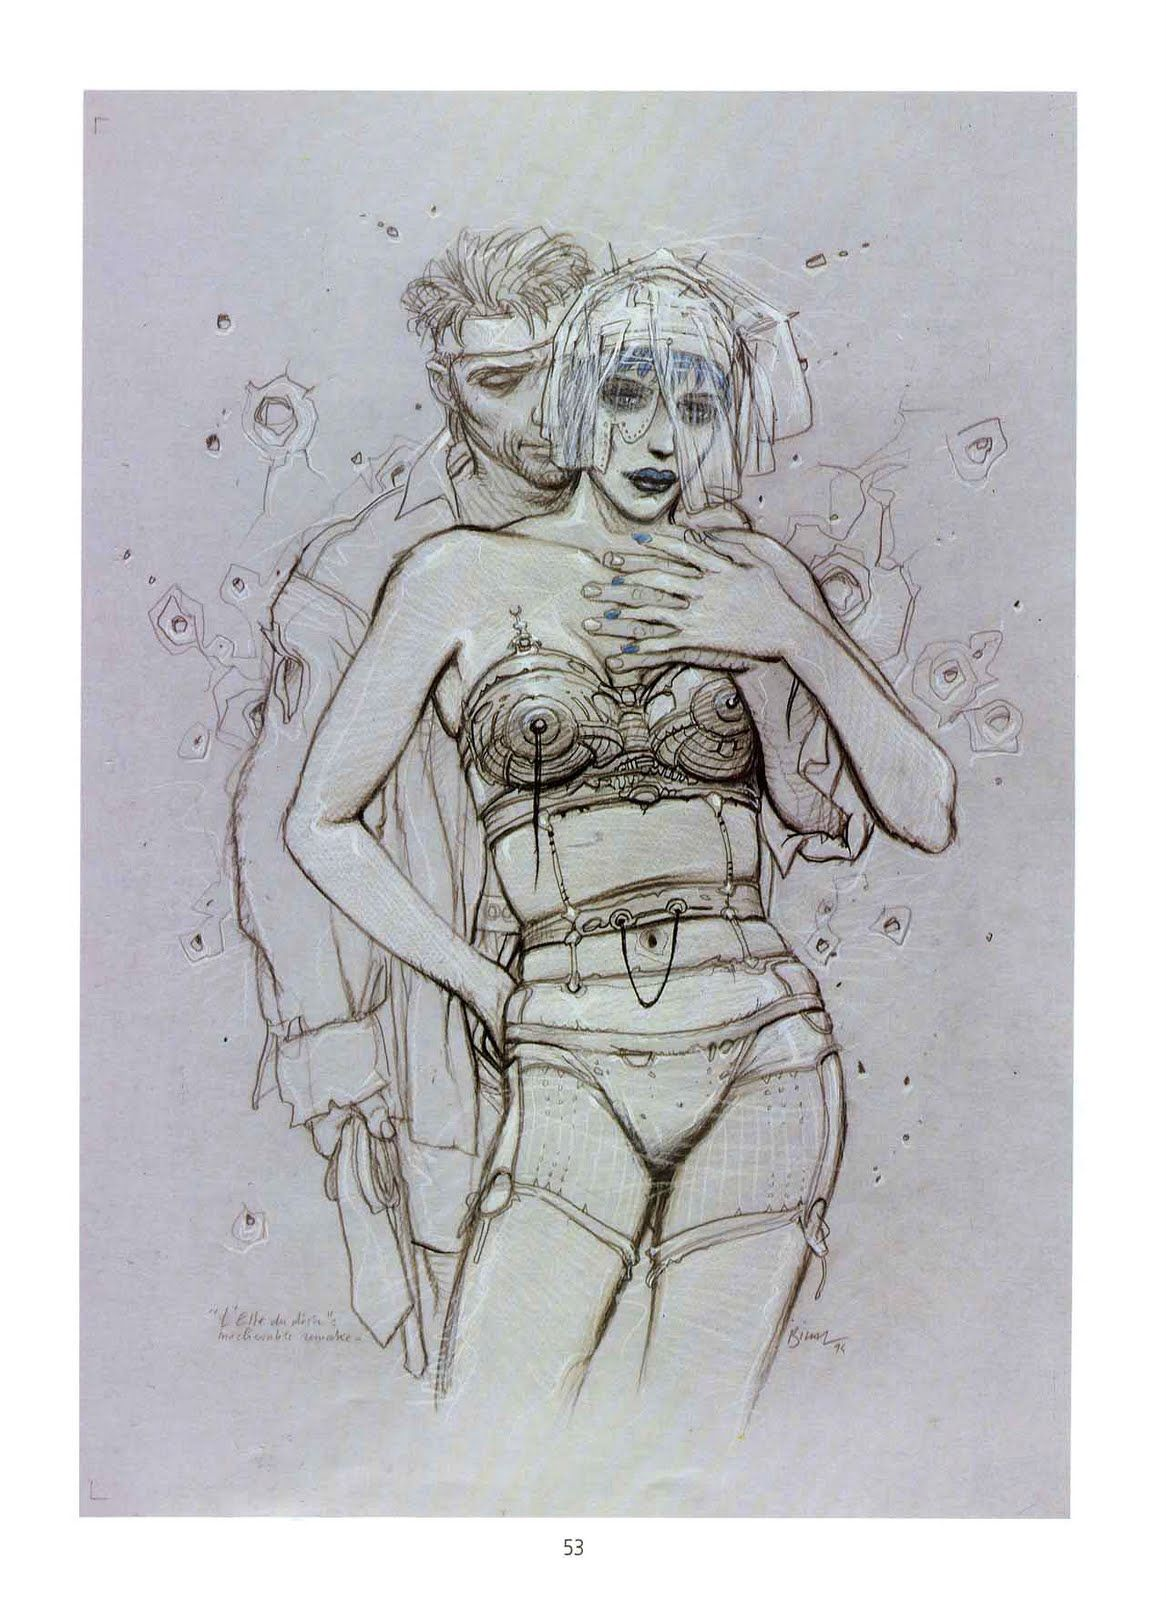 ... ou en noir et blanc  (drawing from Enki Bilal)